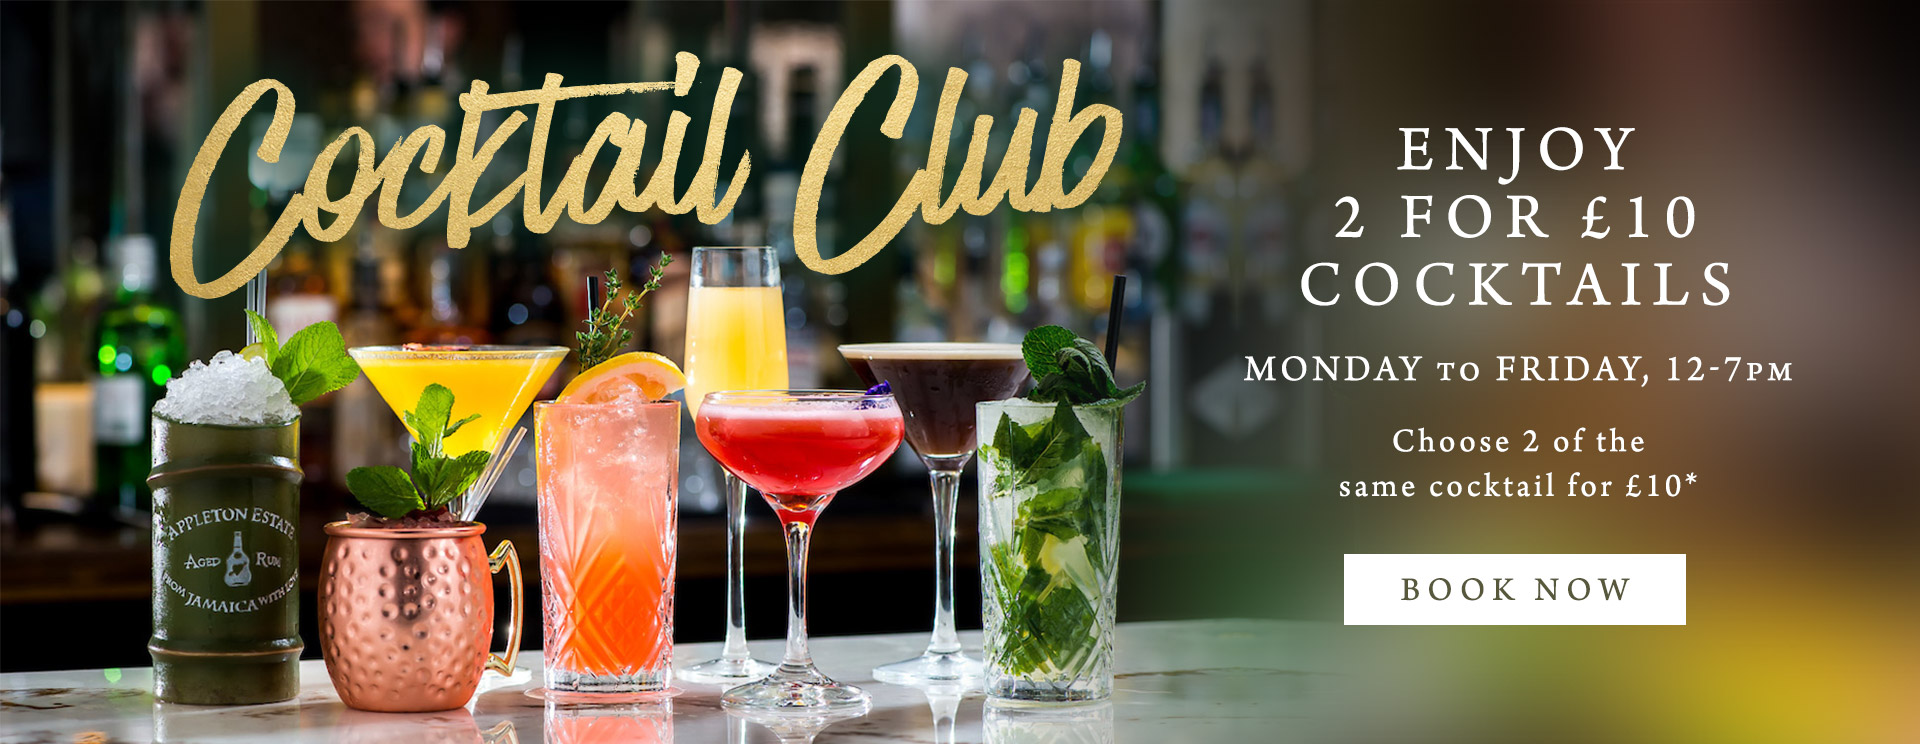 2 for £10 cocktails at The Coombe Cellars